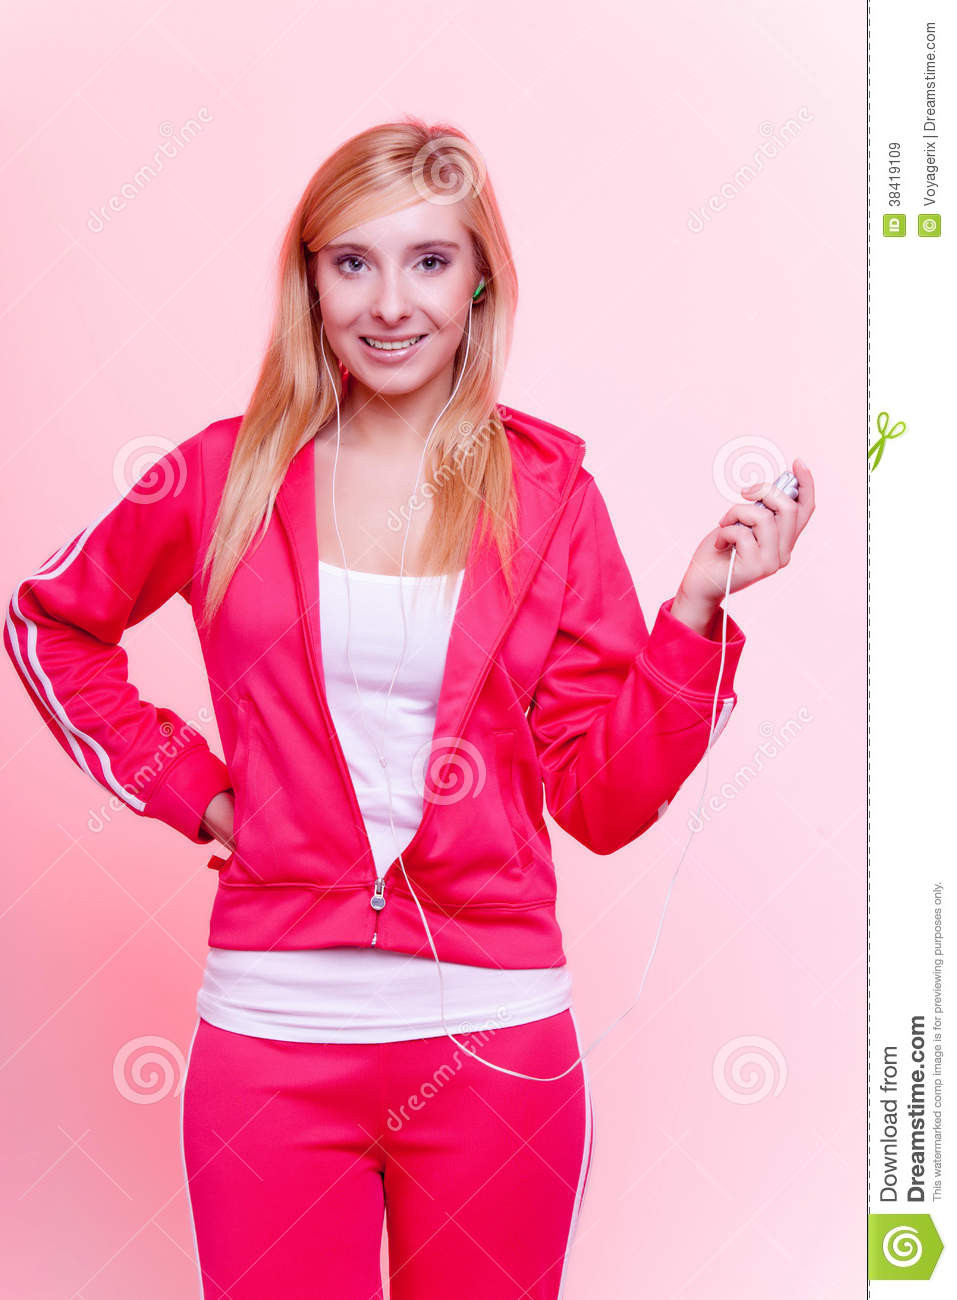 Fitness Woman Listen Music Mp3 Relax Gym Stock Image - Image